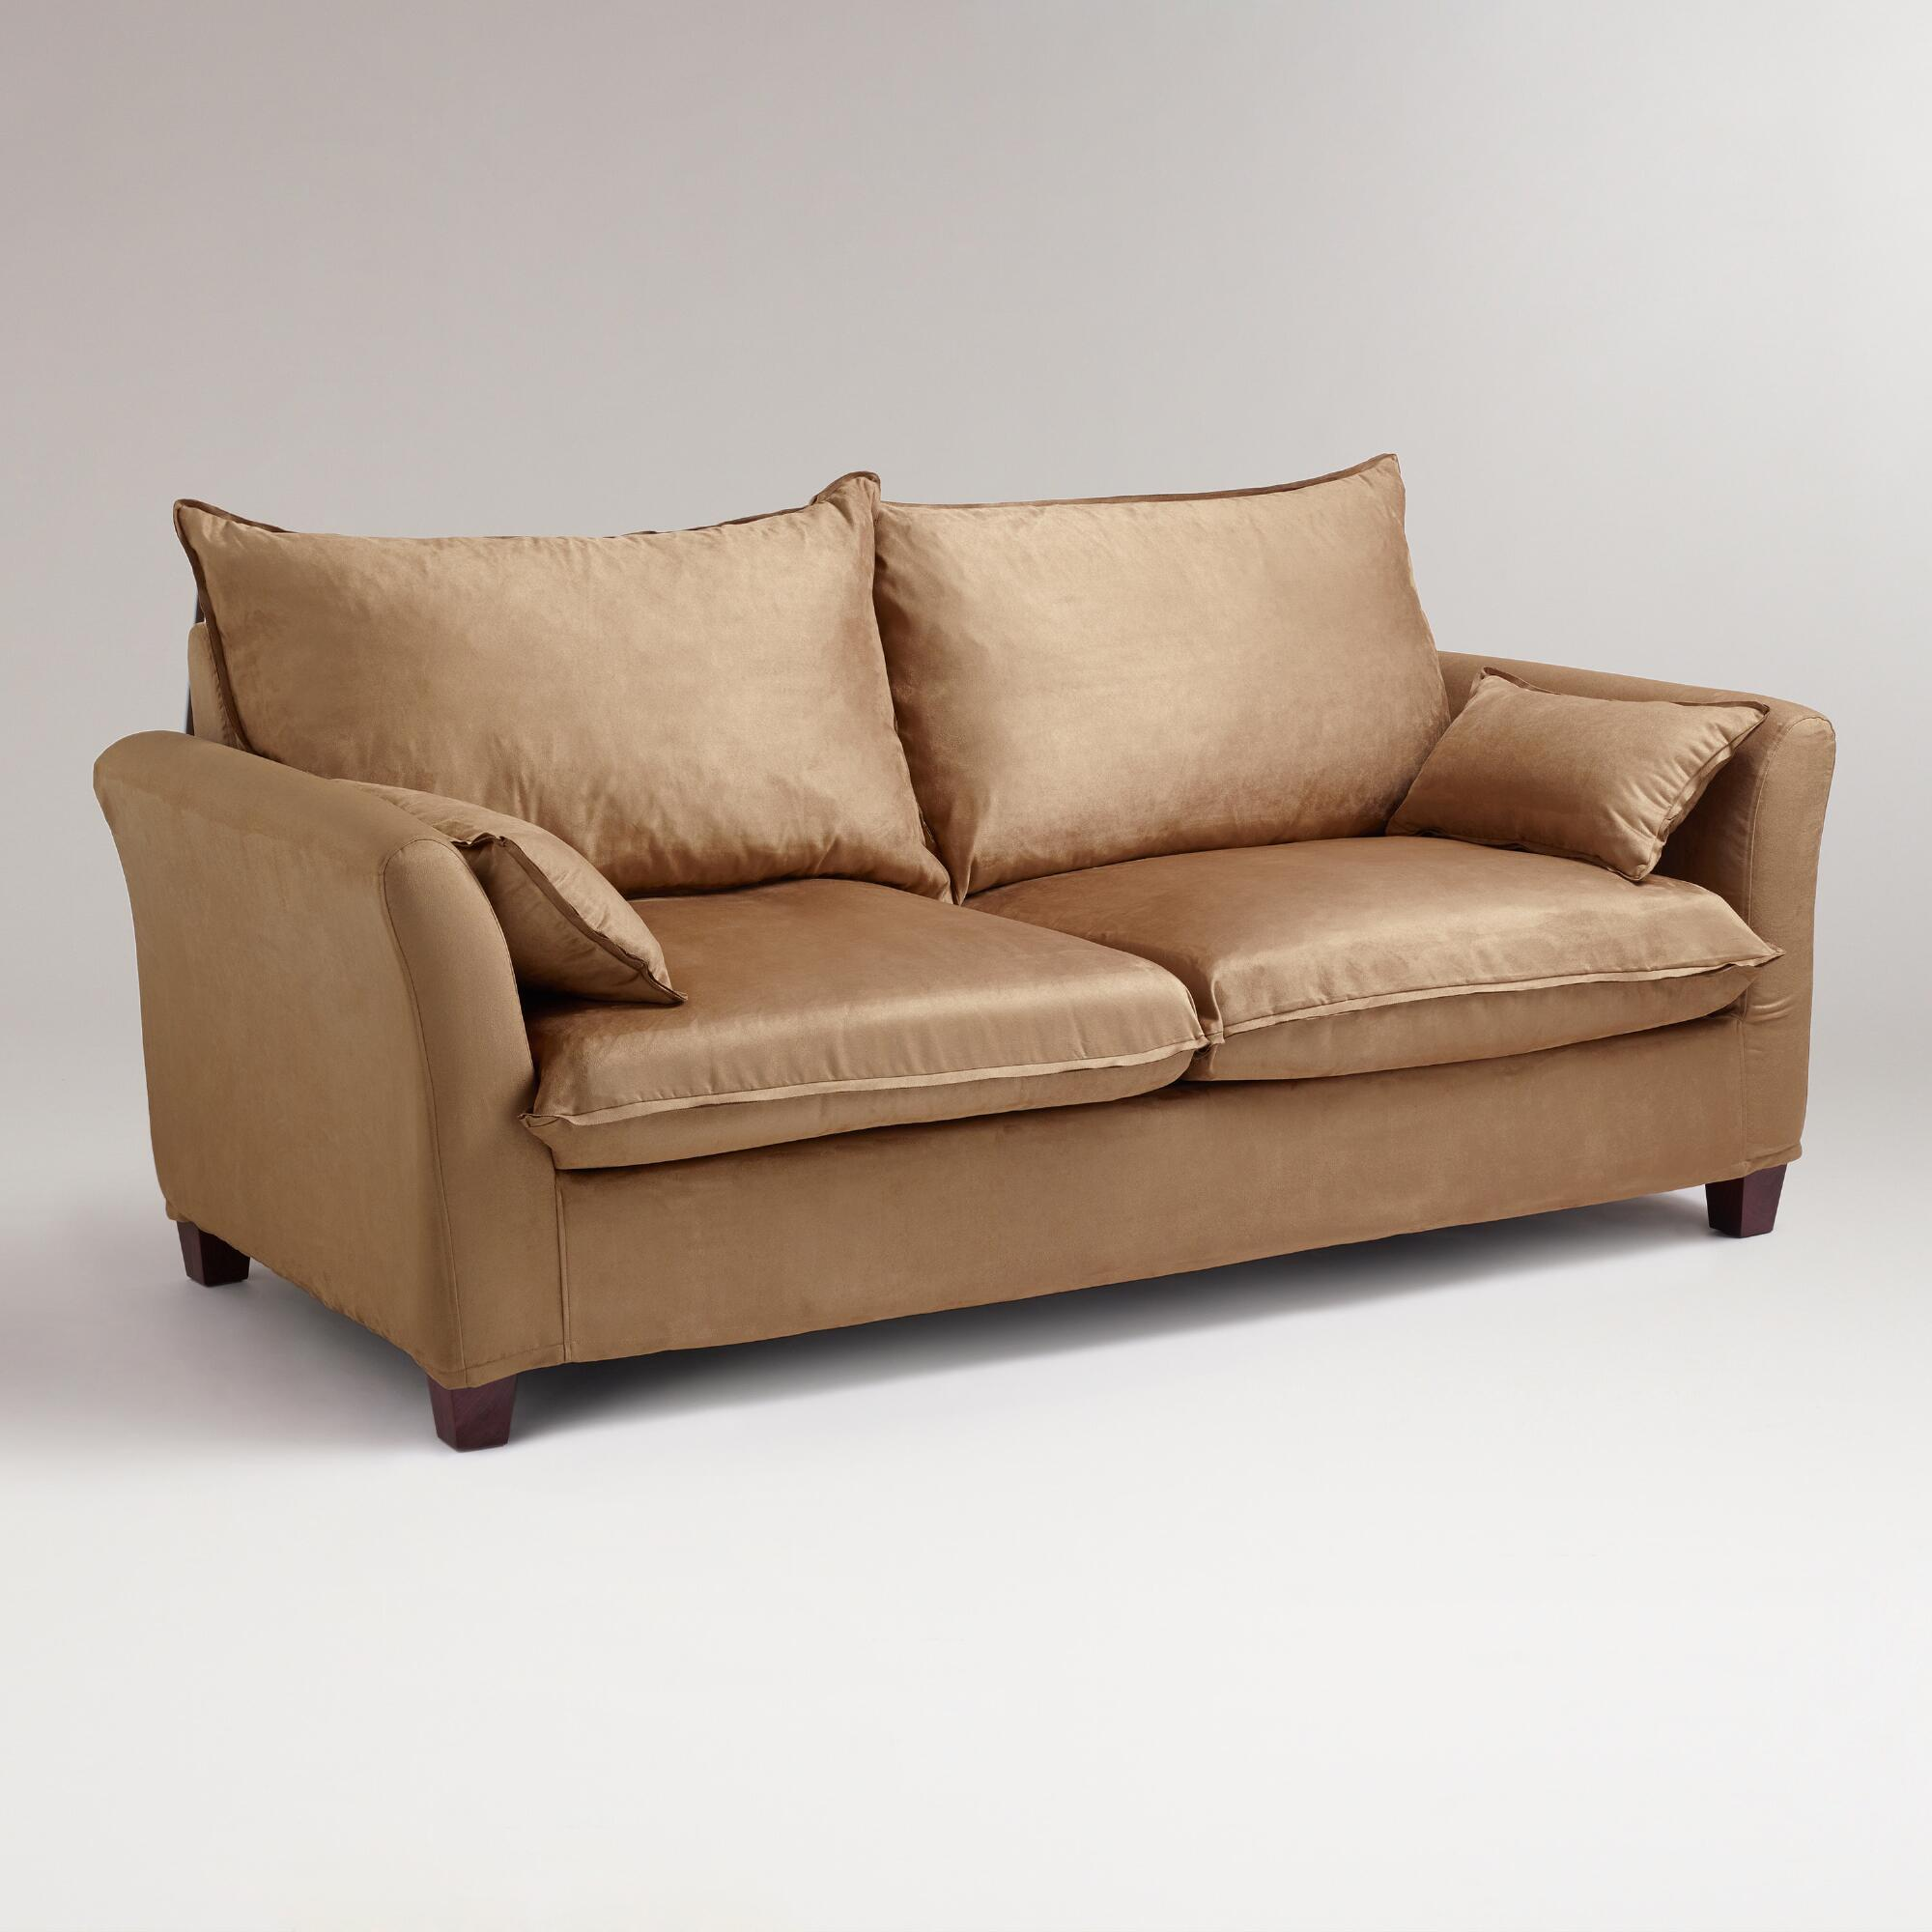 Moccasin Microsuede Luxe Sofa Slipcover World Market